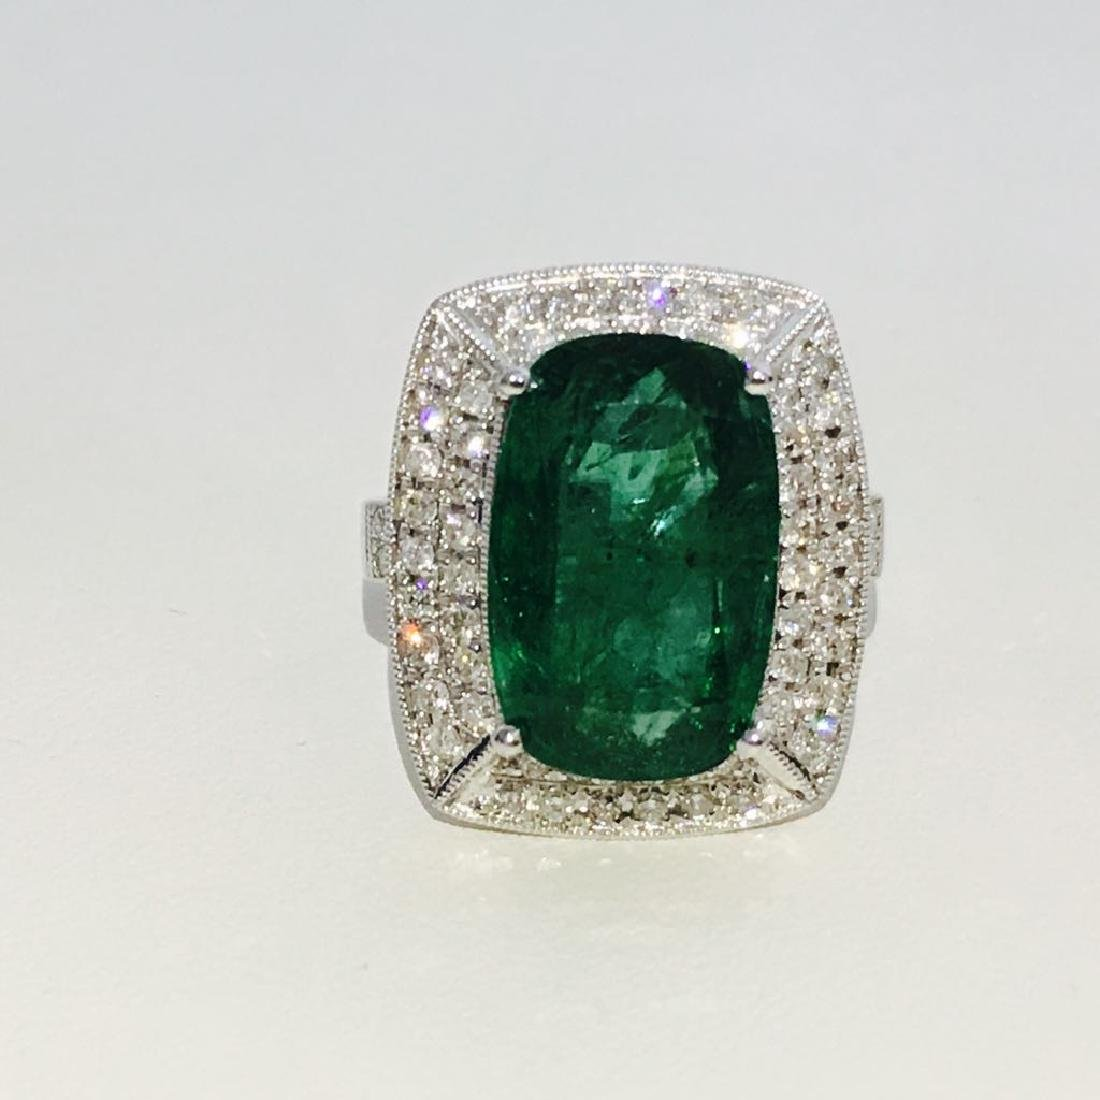 14K Gold, 100% natural 7.25 CT Emerald and Diamond Ring - 5